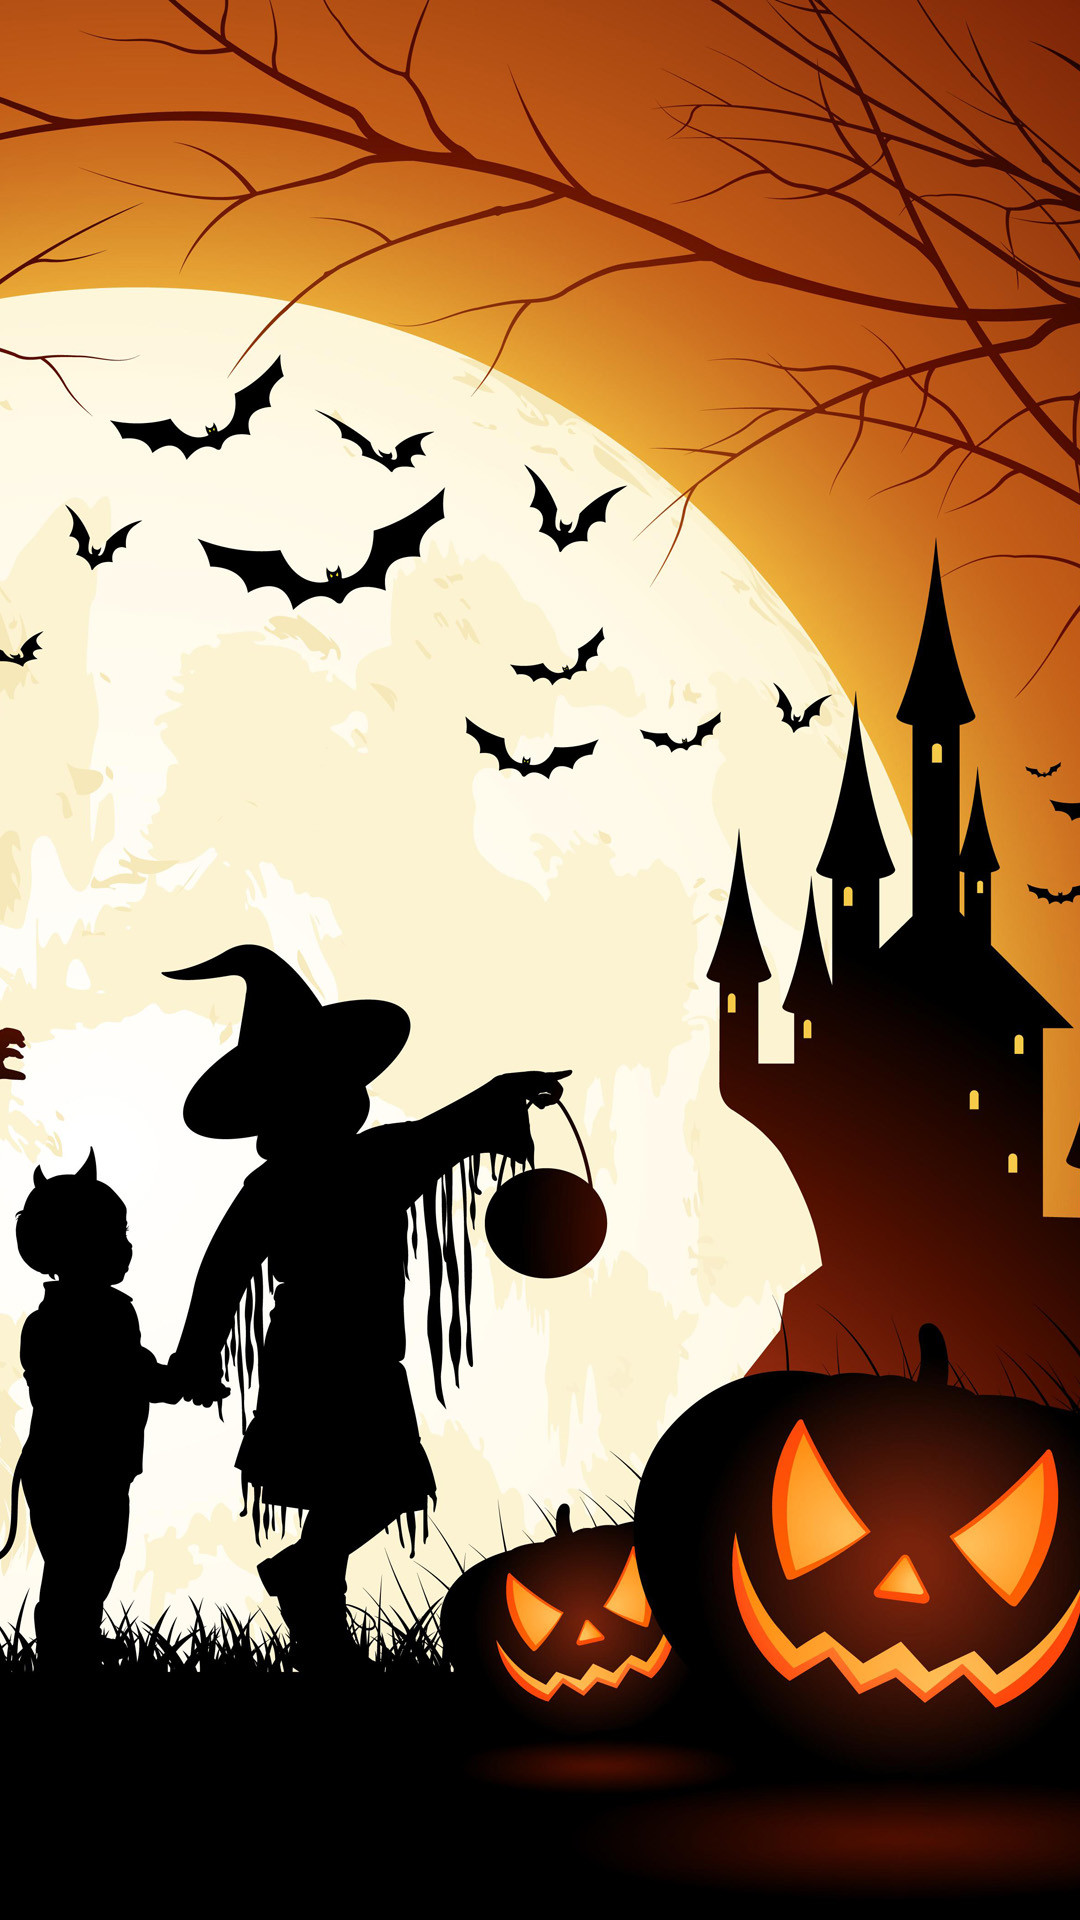 Live Halloween Wallpaper for iPhone (73+ images)